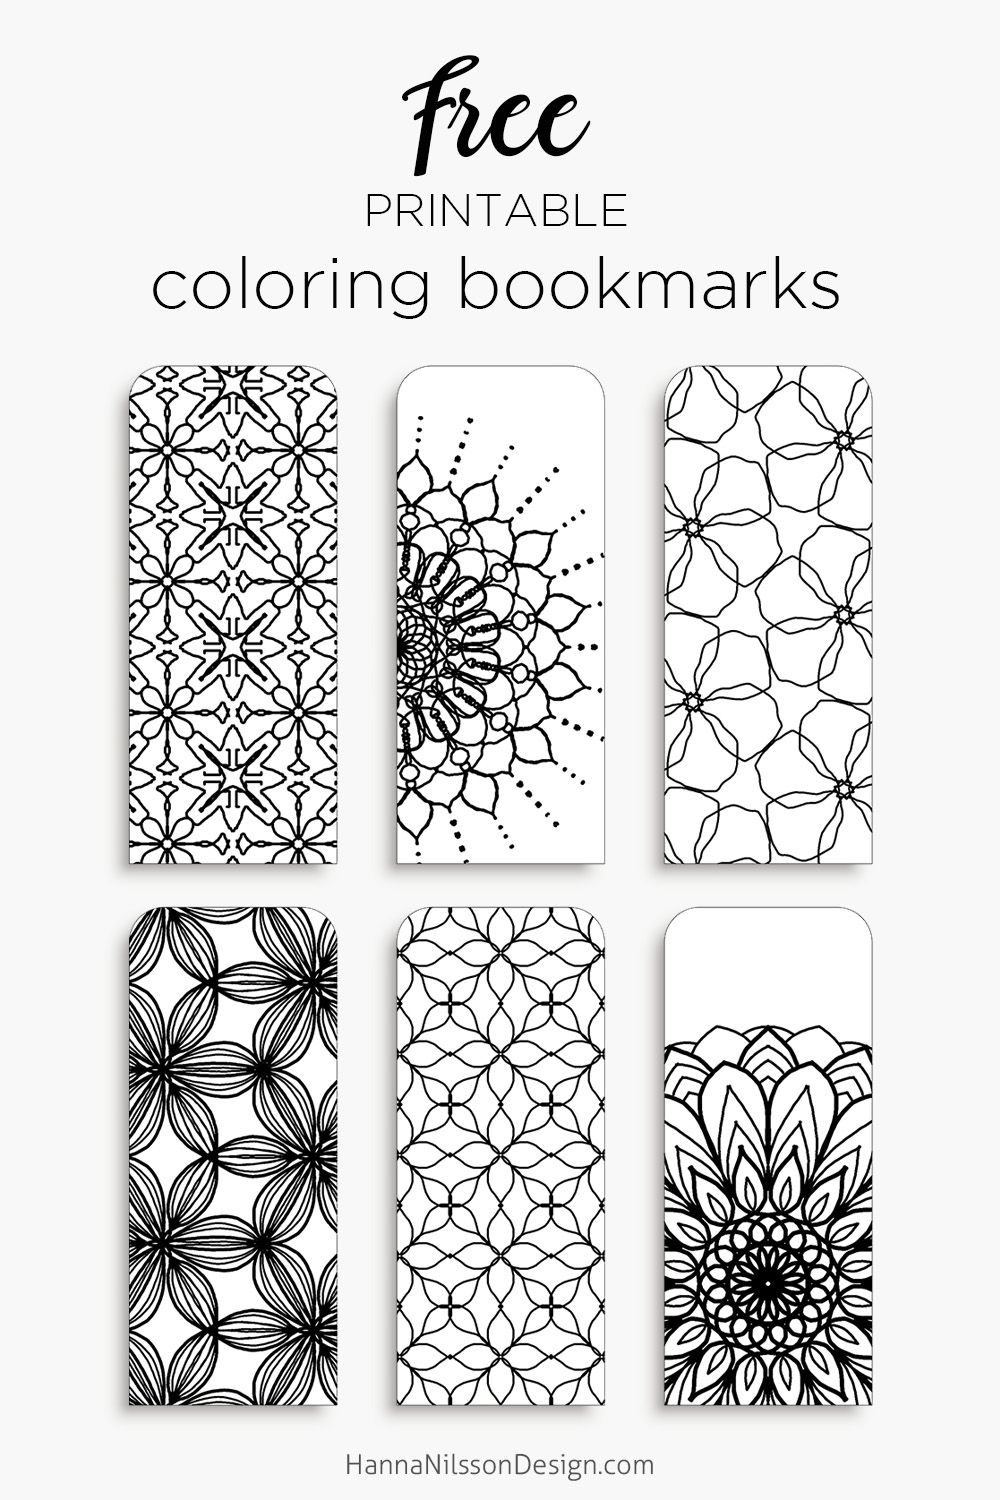 Coloring Bookmarks – Print, Color And Read | Hanna Nilsson Design - Free Printable Bookmarks